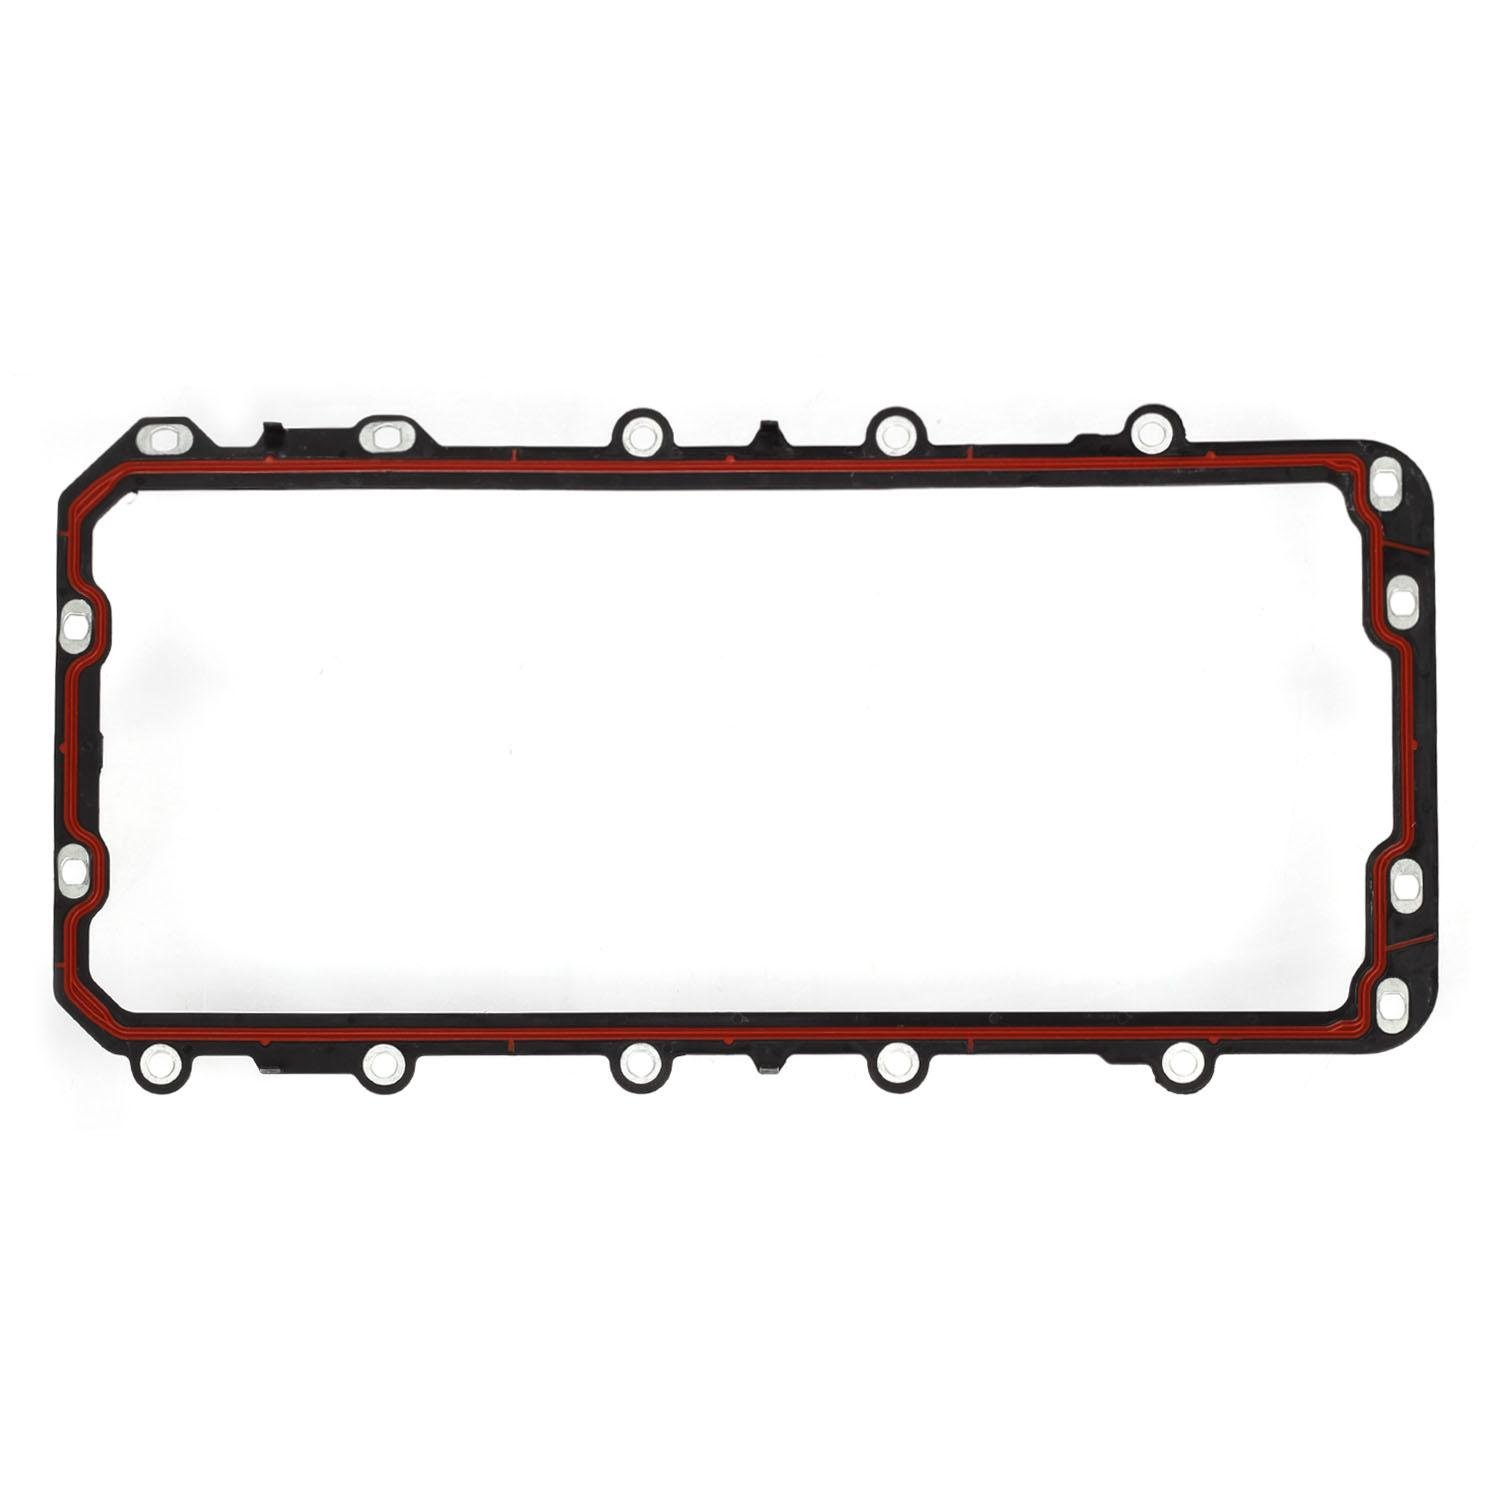 Engine Oil Pan Gasket Set OS32517, OS21013, OS34307R, OS6033 Fits For 2008-2013 Ford Expedition Explorer F-150 E-150 Mustang